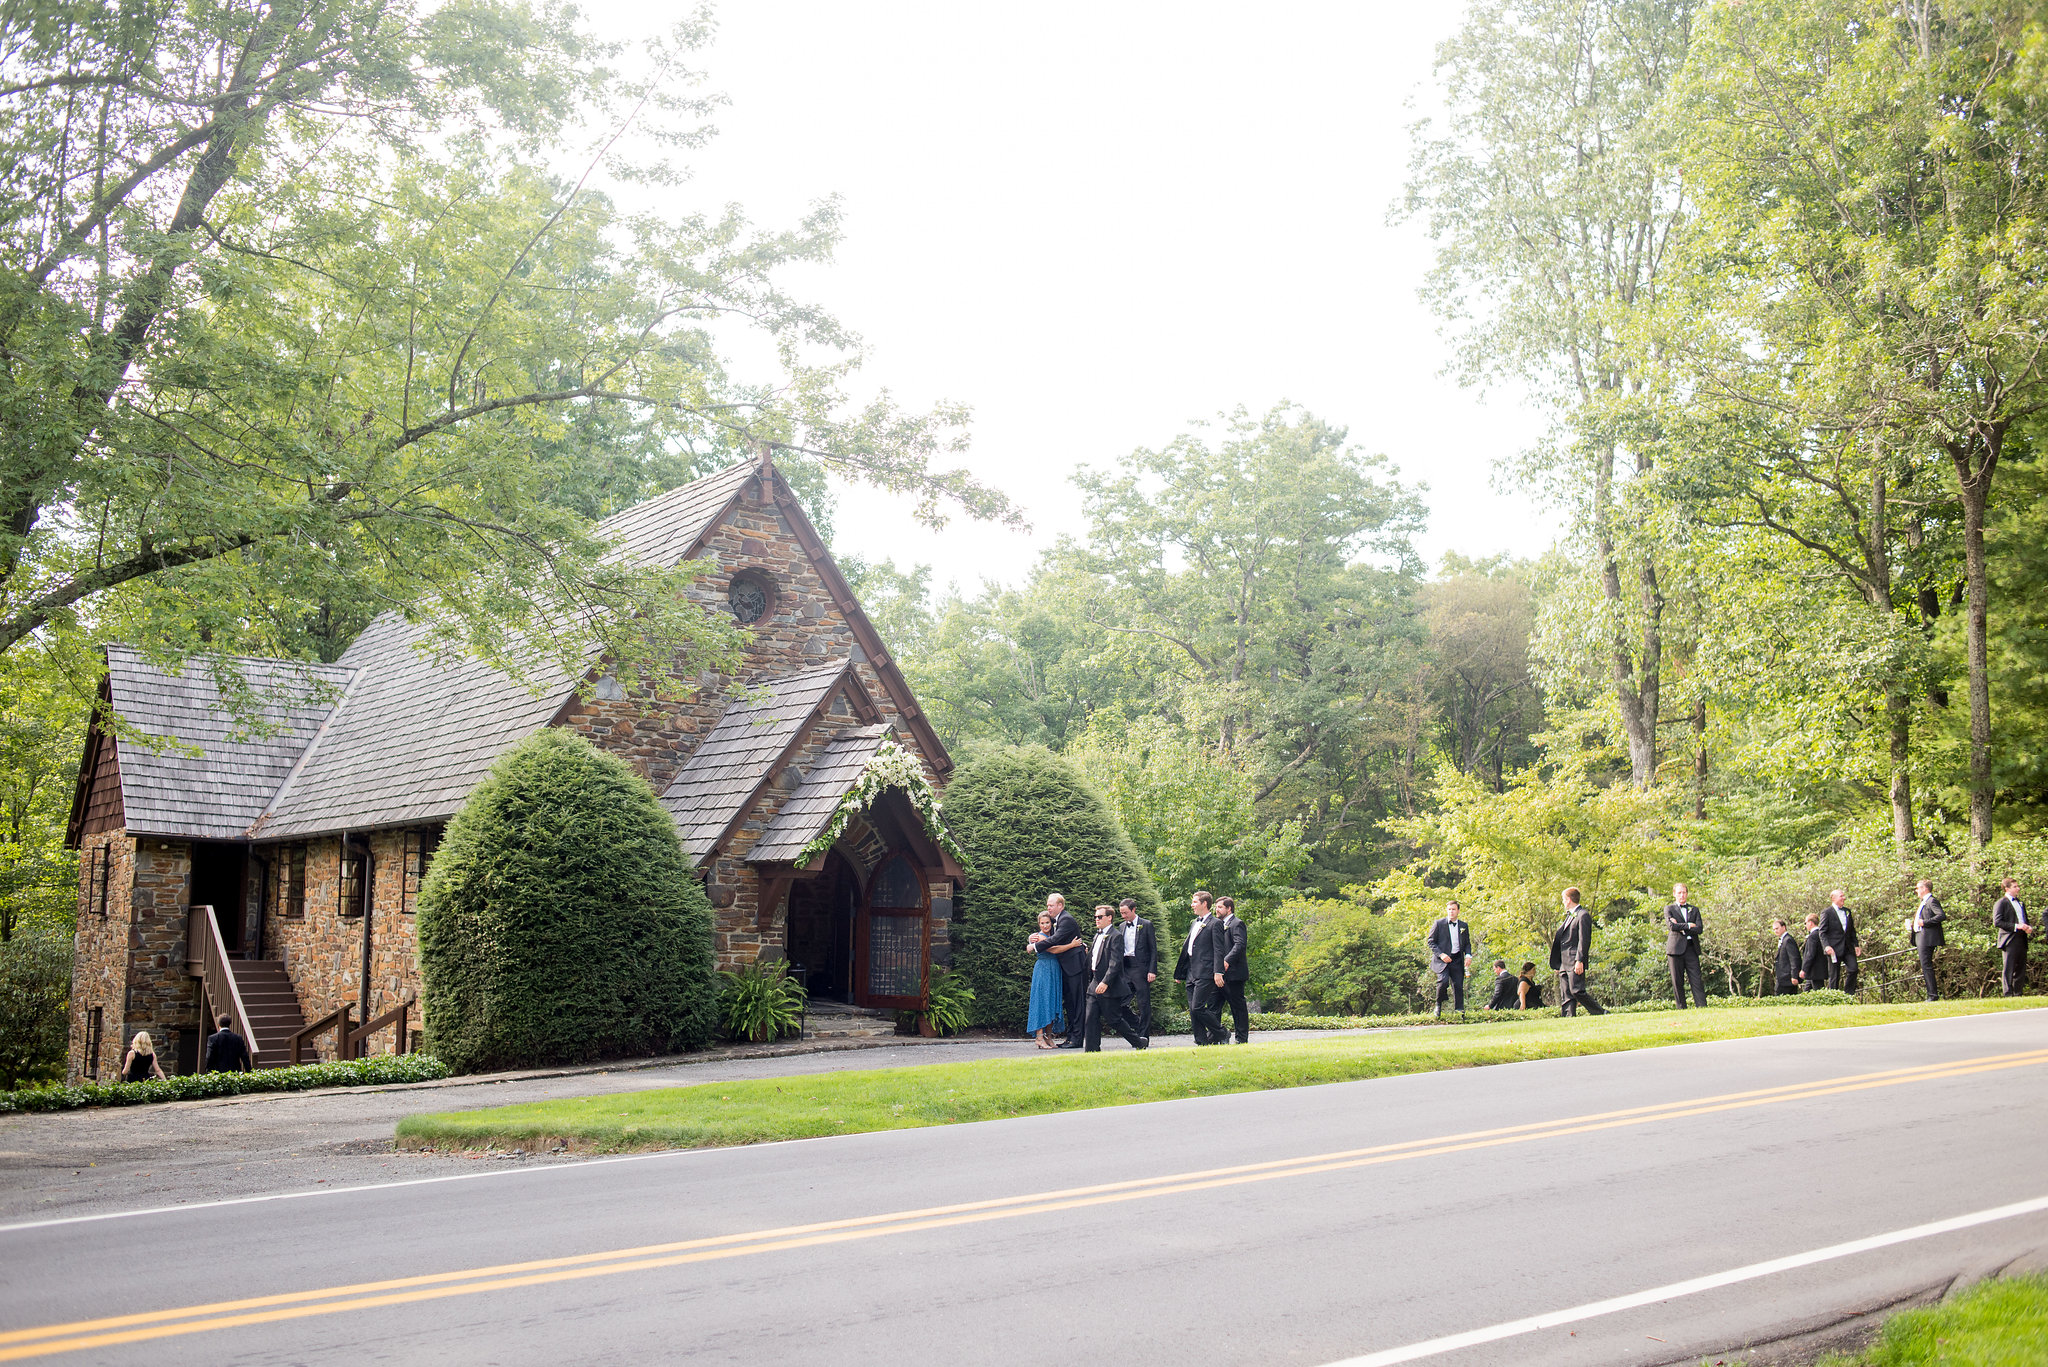 North Carolina Wedding, Events by Reagan, Destination Wedding Planner, Church